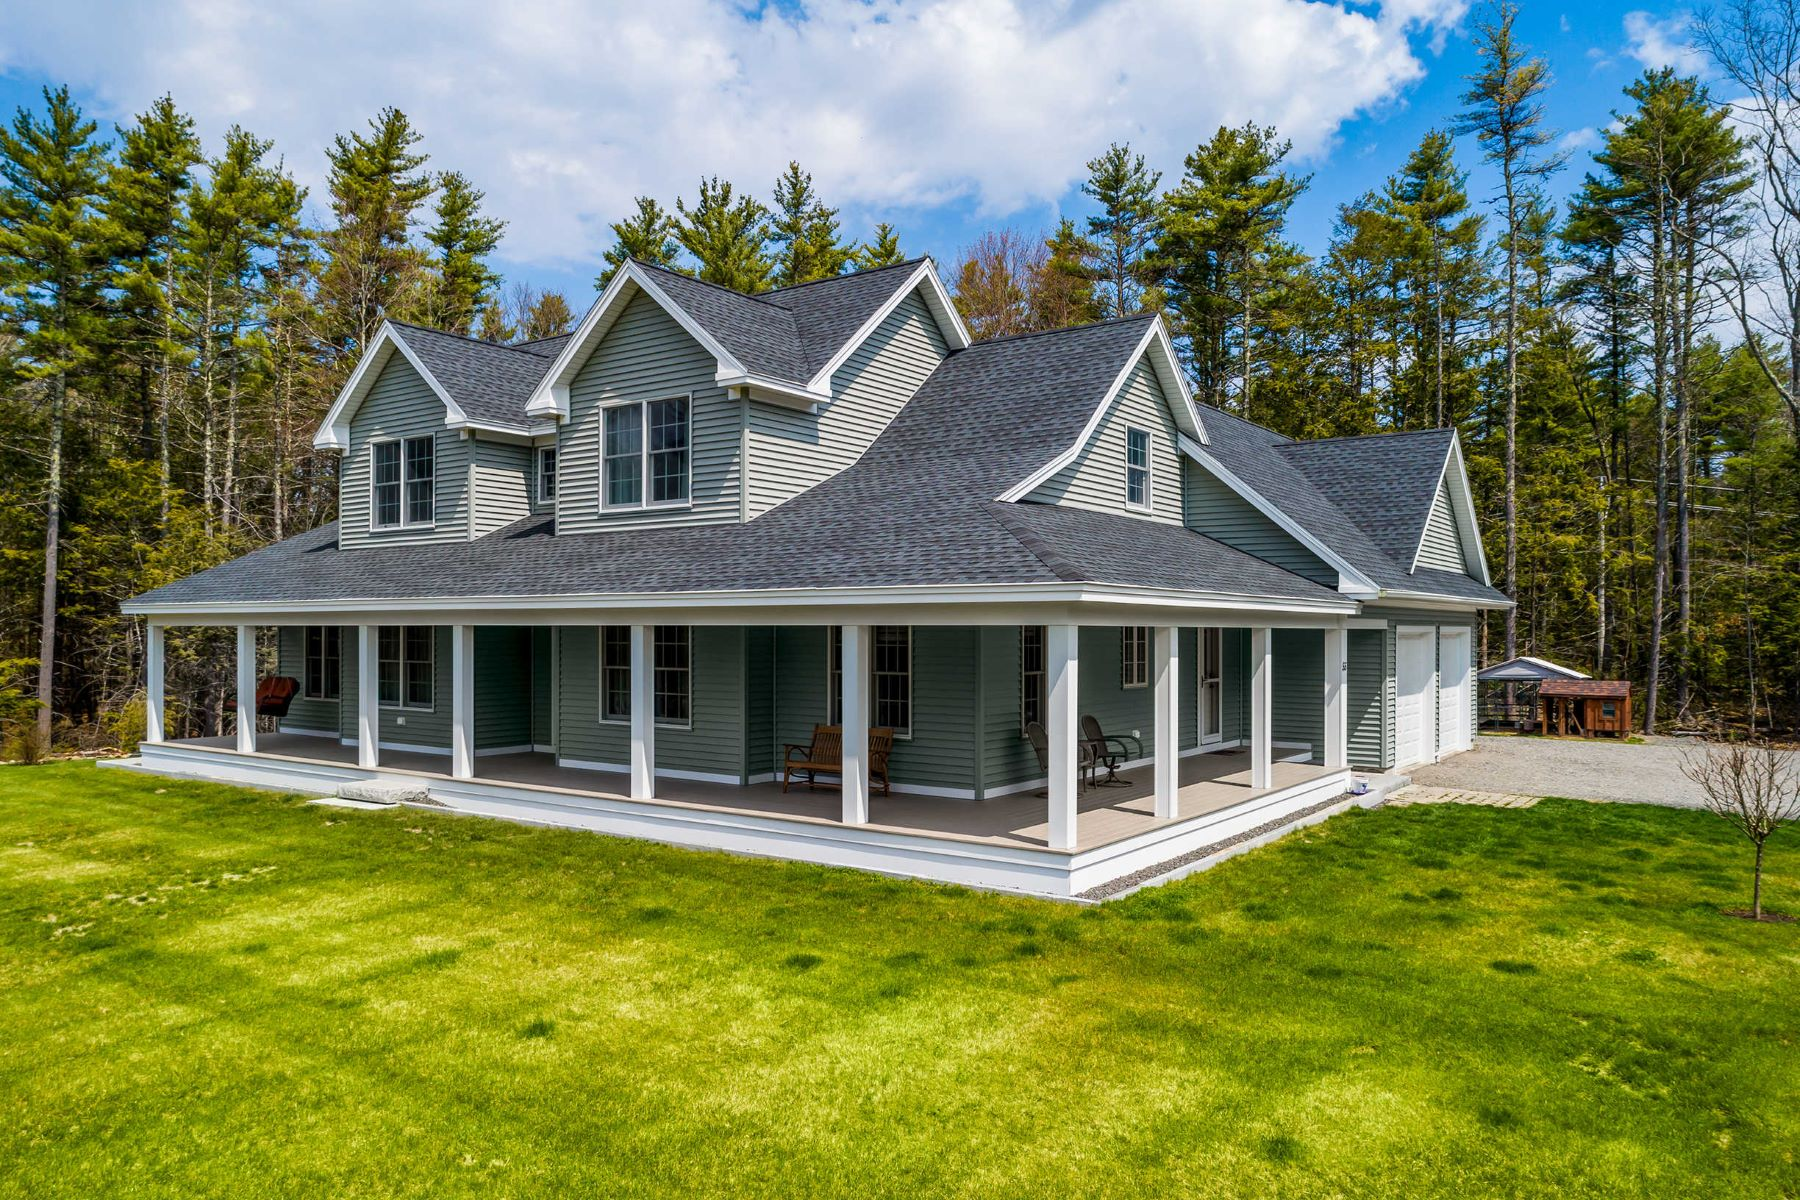 Single Family Homes for Active at Custom Built Home For Luxurious Living and Entertaining 55 Marcie Way Ogunquit, Maine 03907 United States